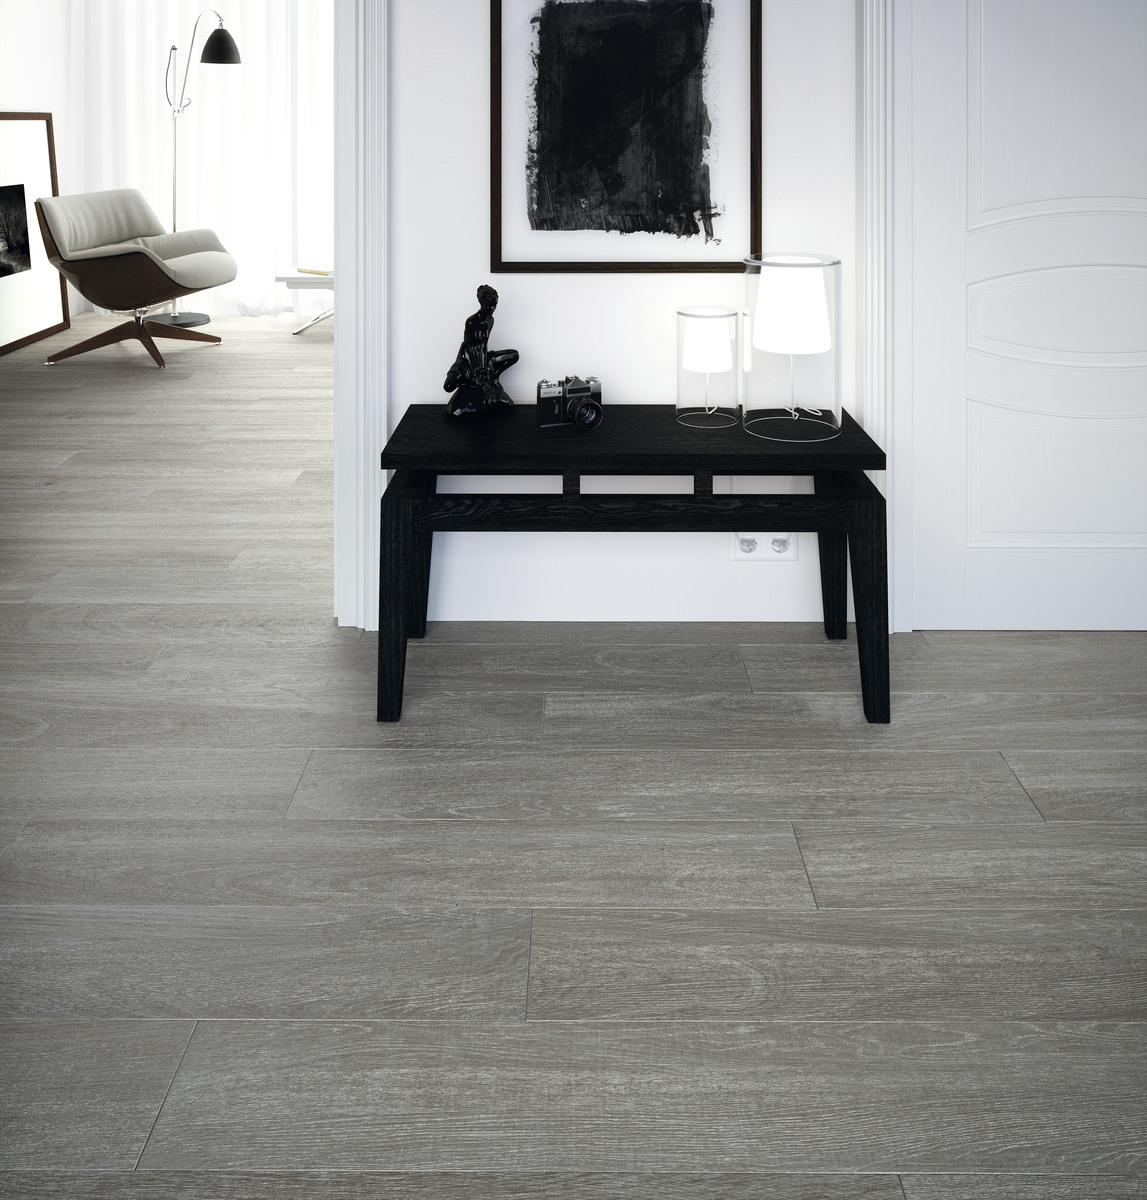 Wood Effect Porcelain Floor Tiles - Ebano-furniture-bathroom-with-wood-effect